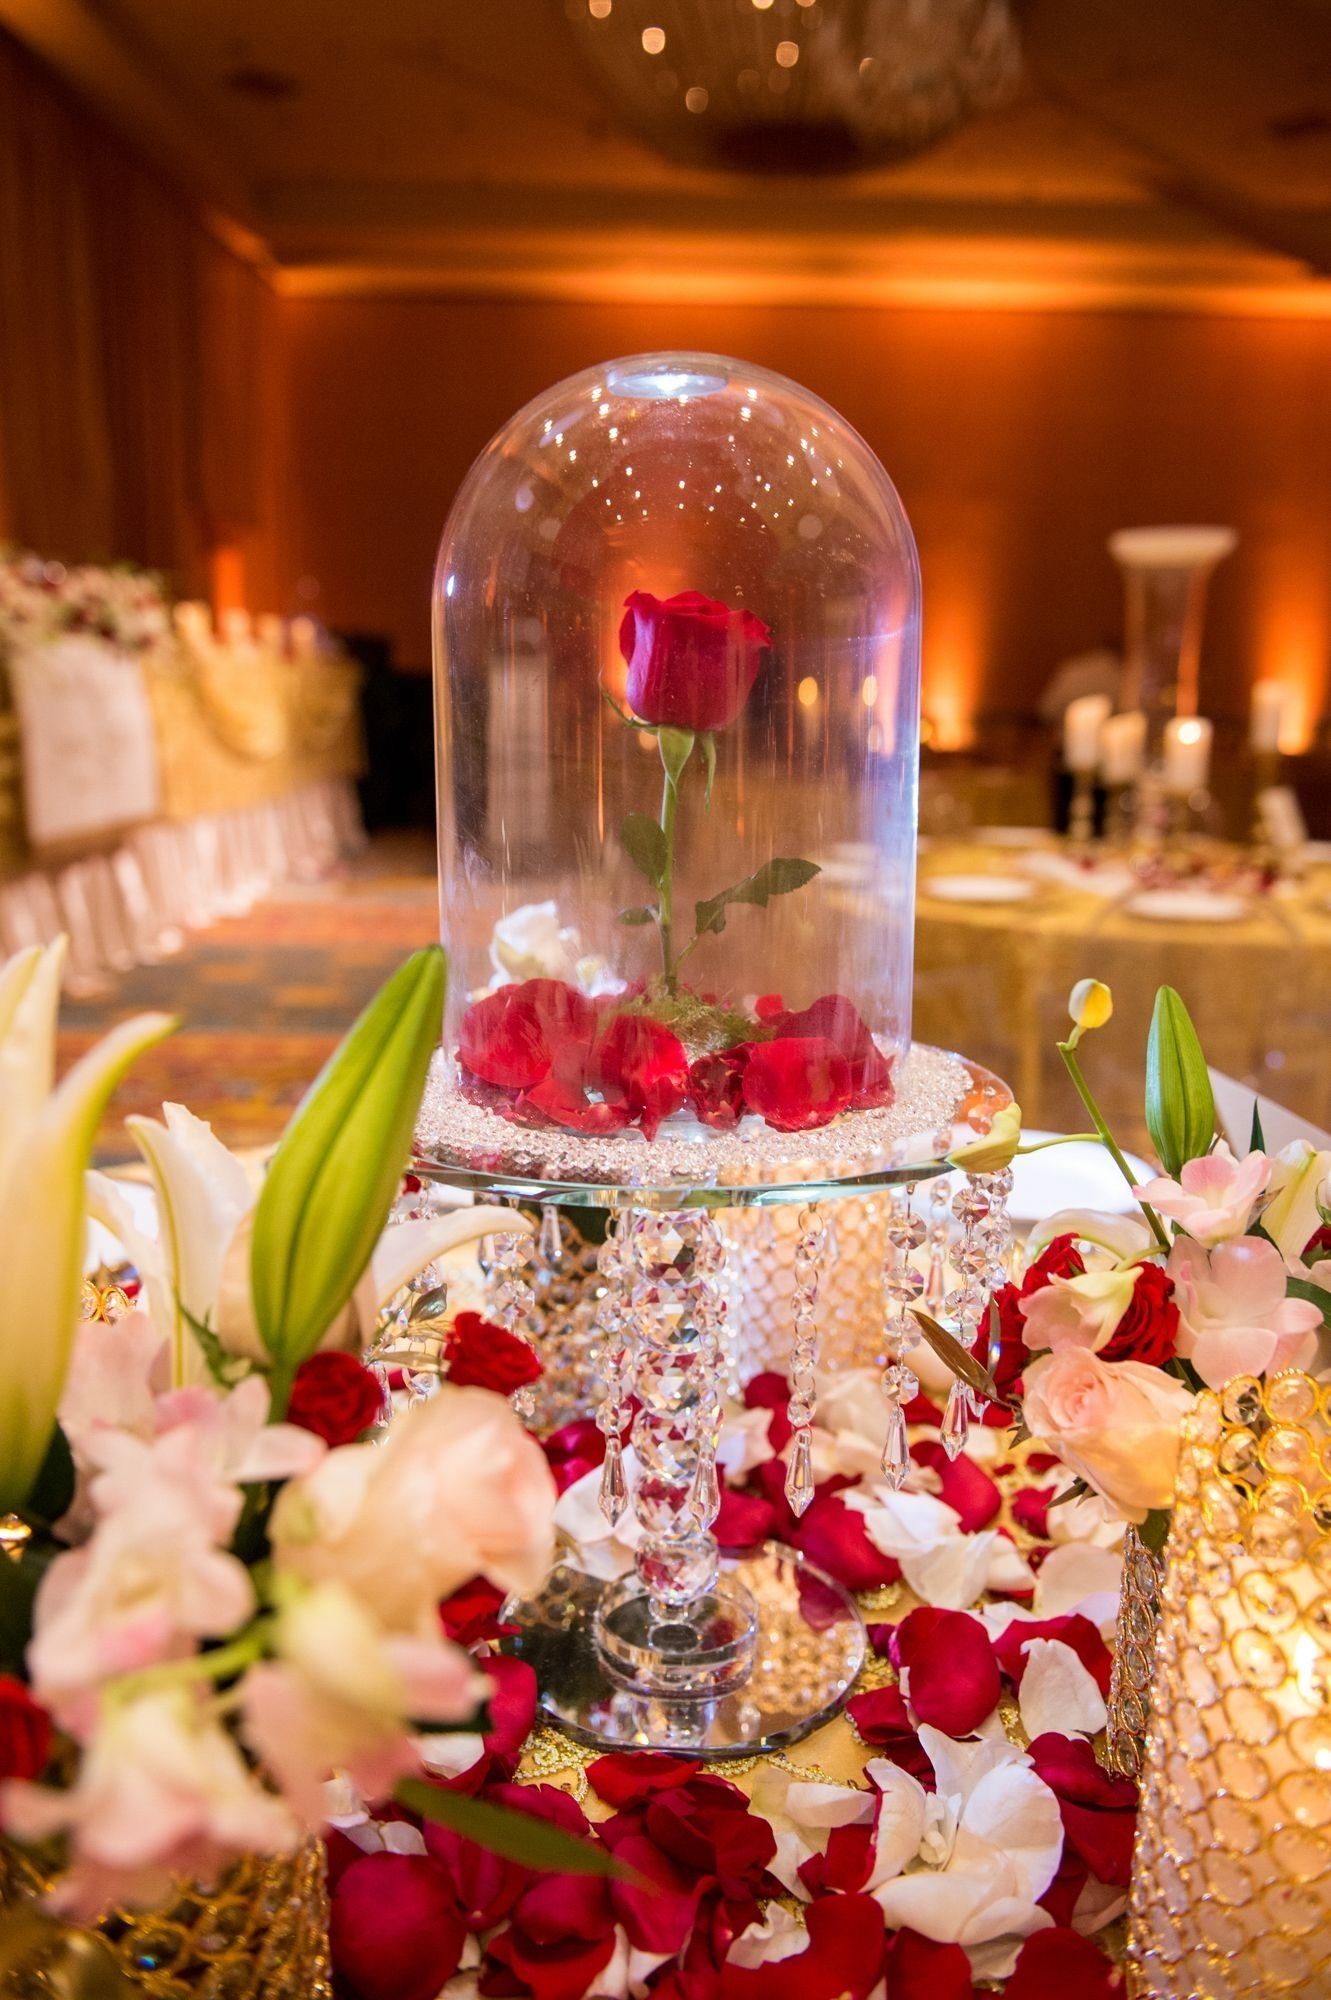 10 Gorgeous Beauty And The Beast Wedding Theme Ideas rose dome centerpiece inspiredbeauty and the beast beauty and 2020